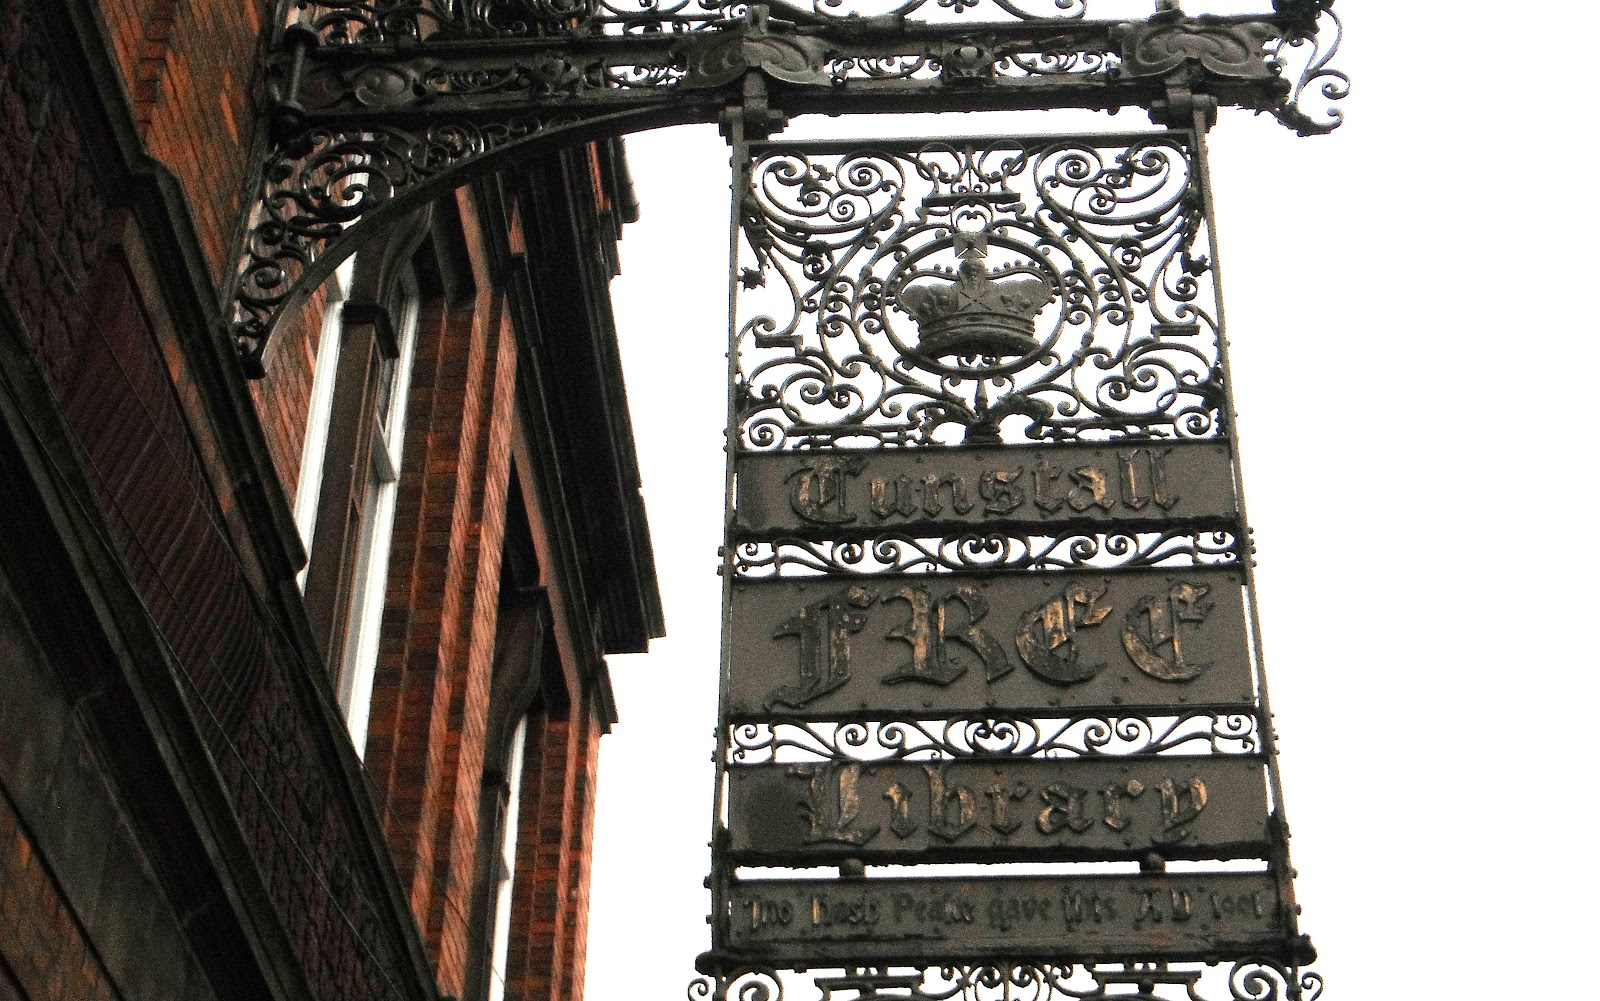 Wrought-iron sign outside Tunstall Library